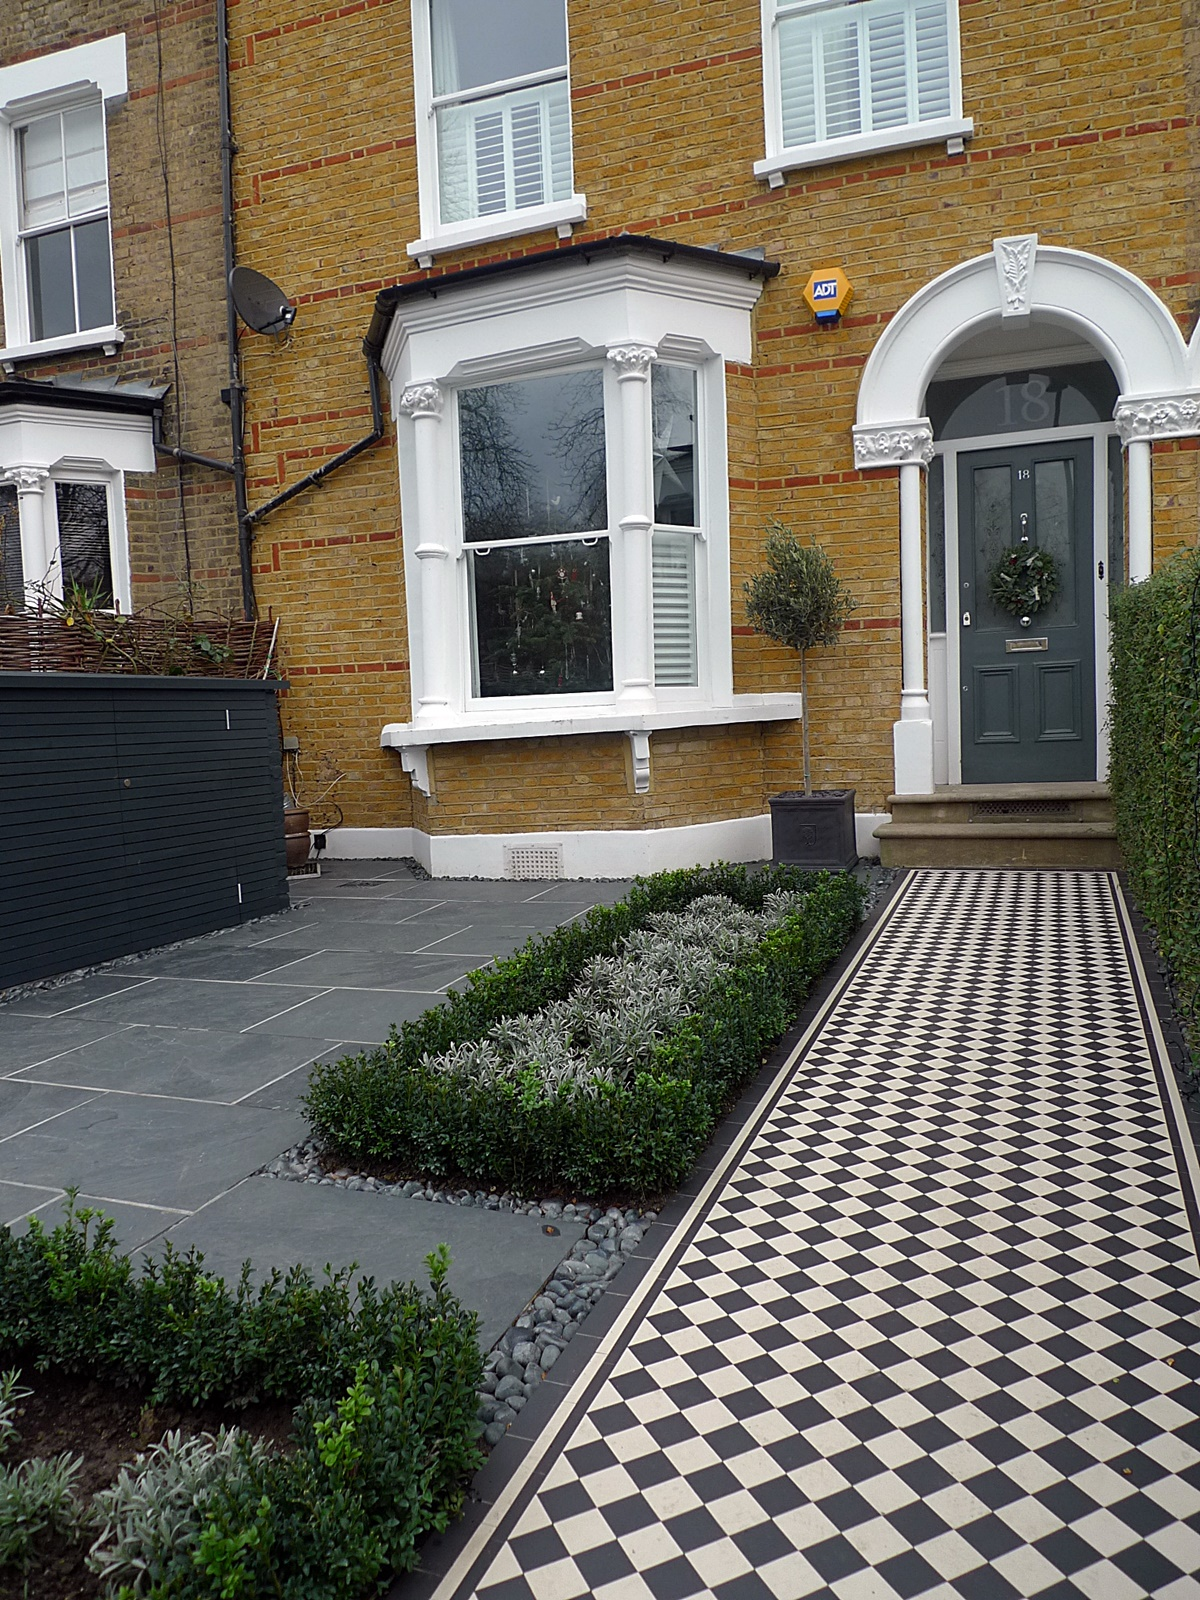 black and white victorian mosaic tile path knot garden topiary design battersea clapham balham brixton dulwich london